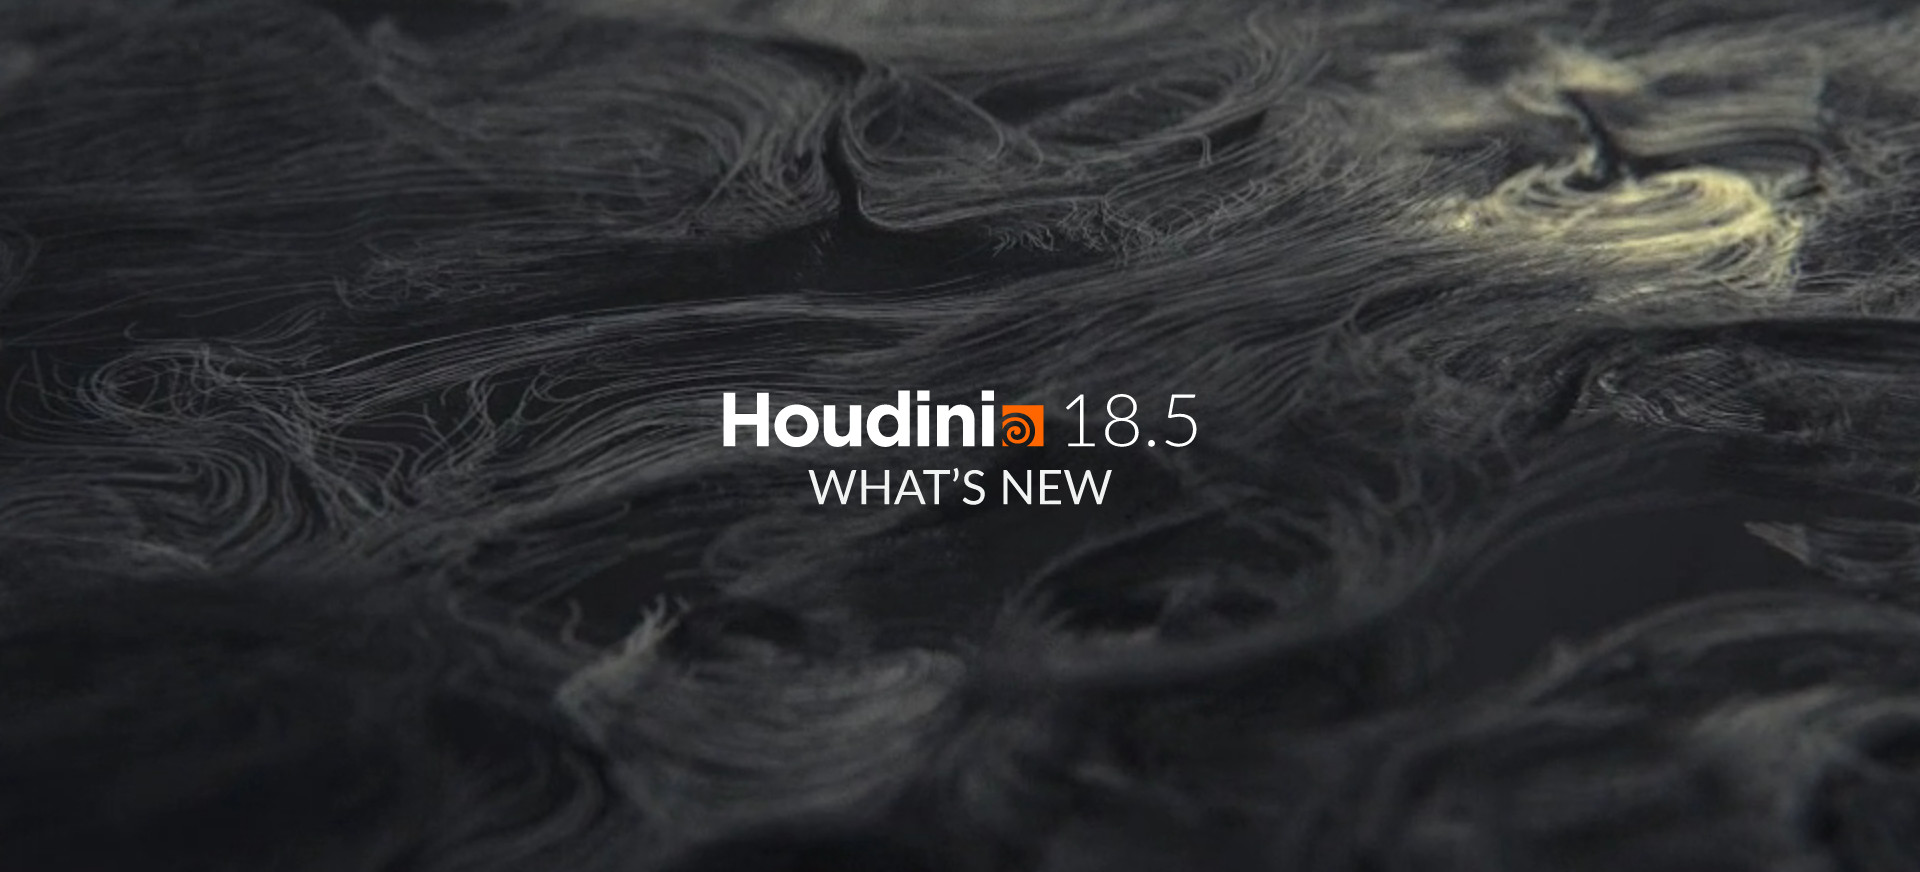 Houdini 18.5 Released - What's new